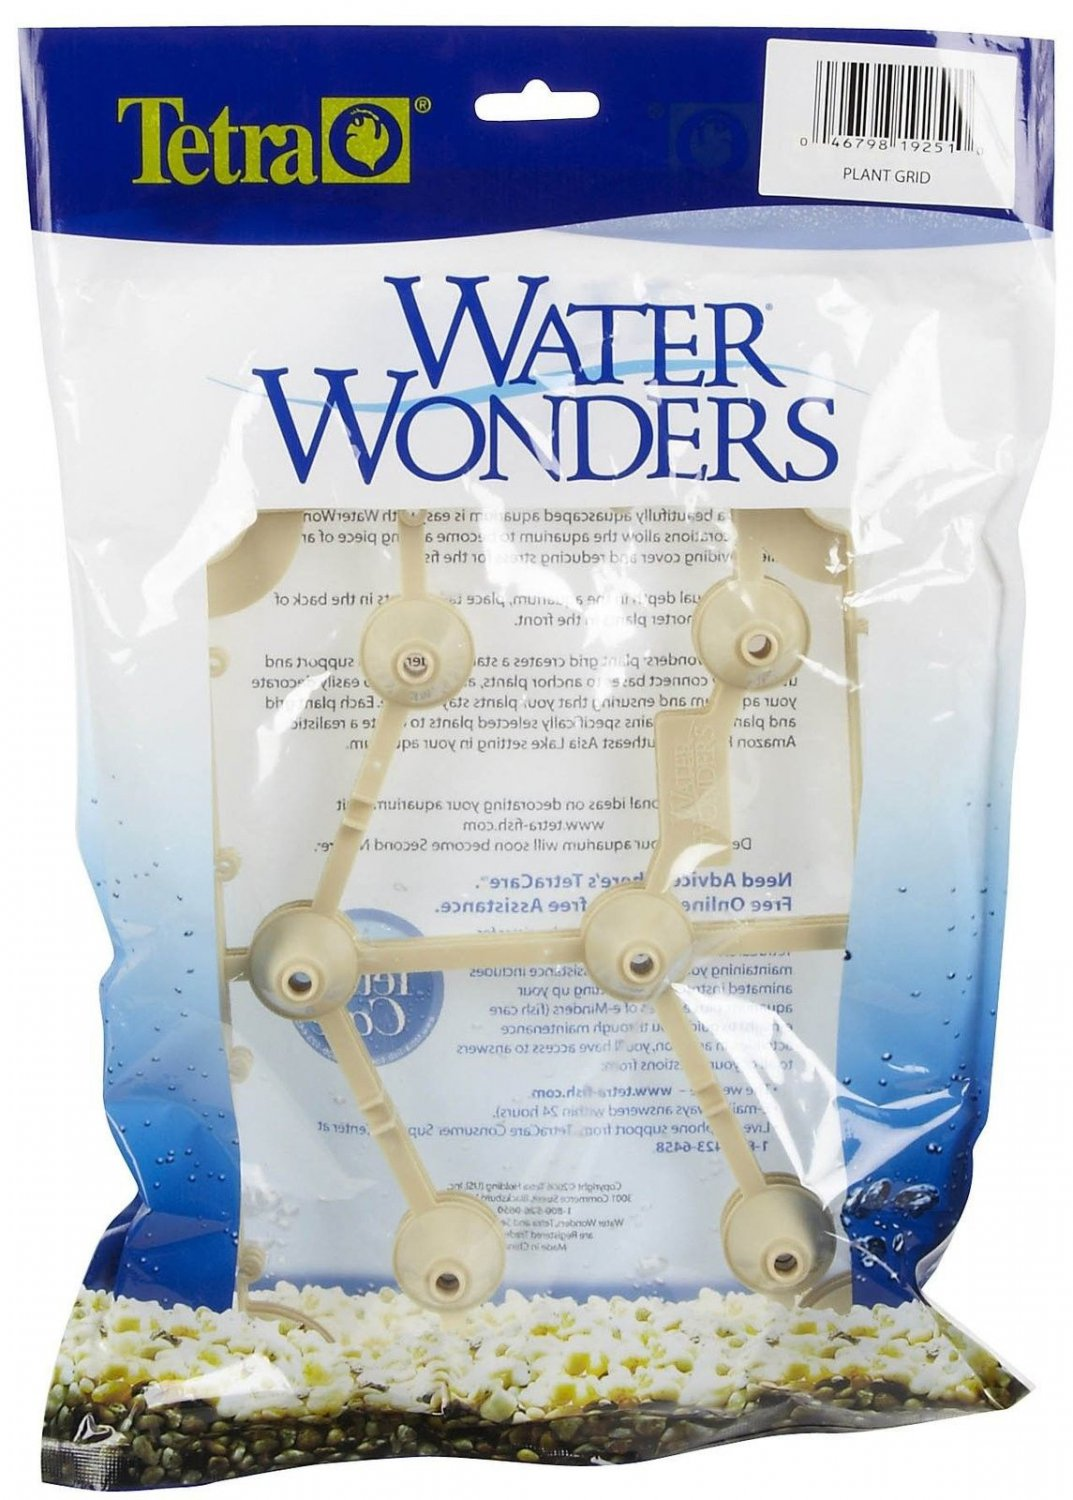 Tetra Water Wonders 3-Pack Plastic Plant Grid for Aquariums and Fish Tanks